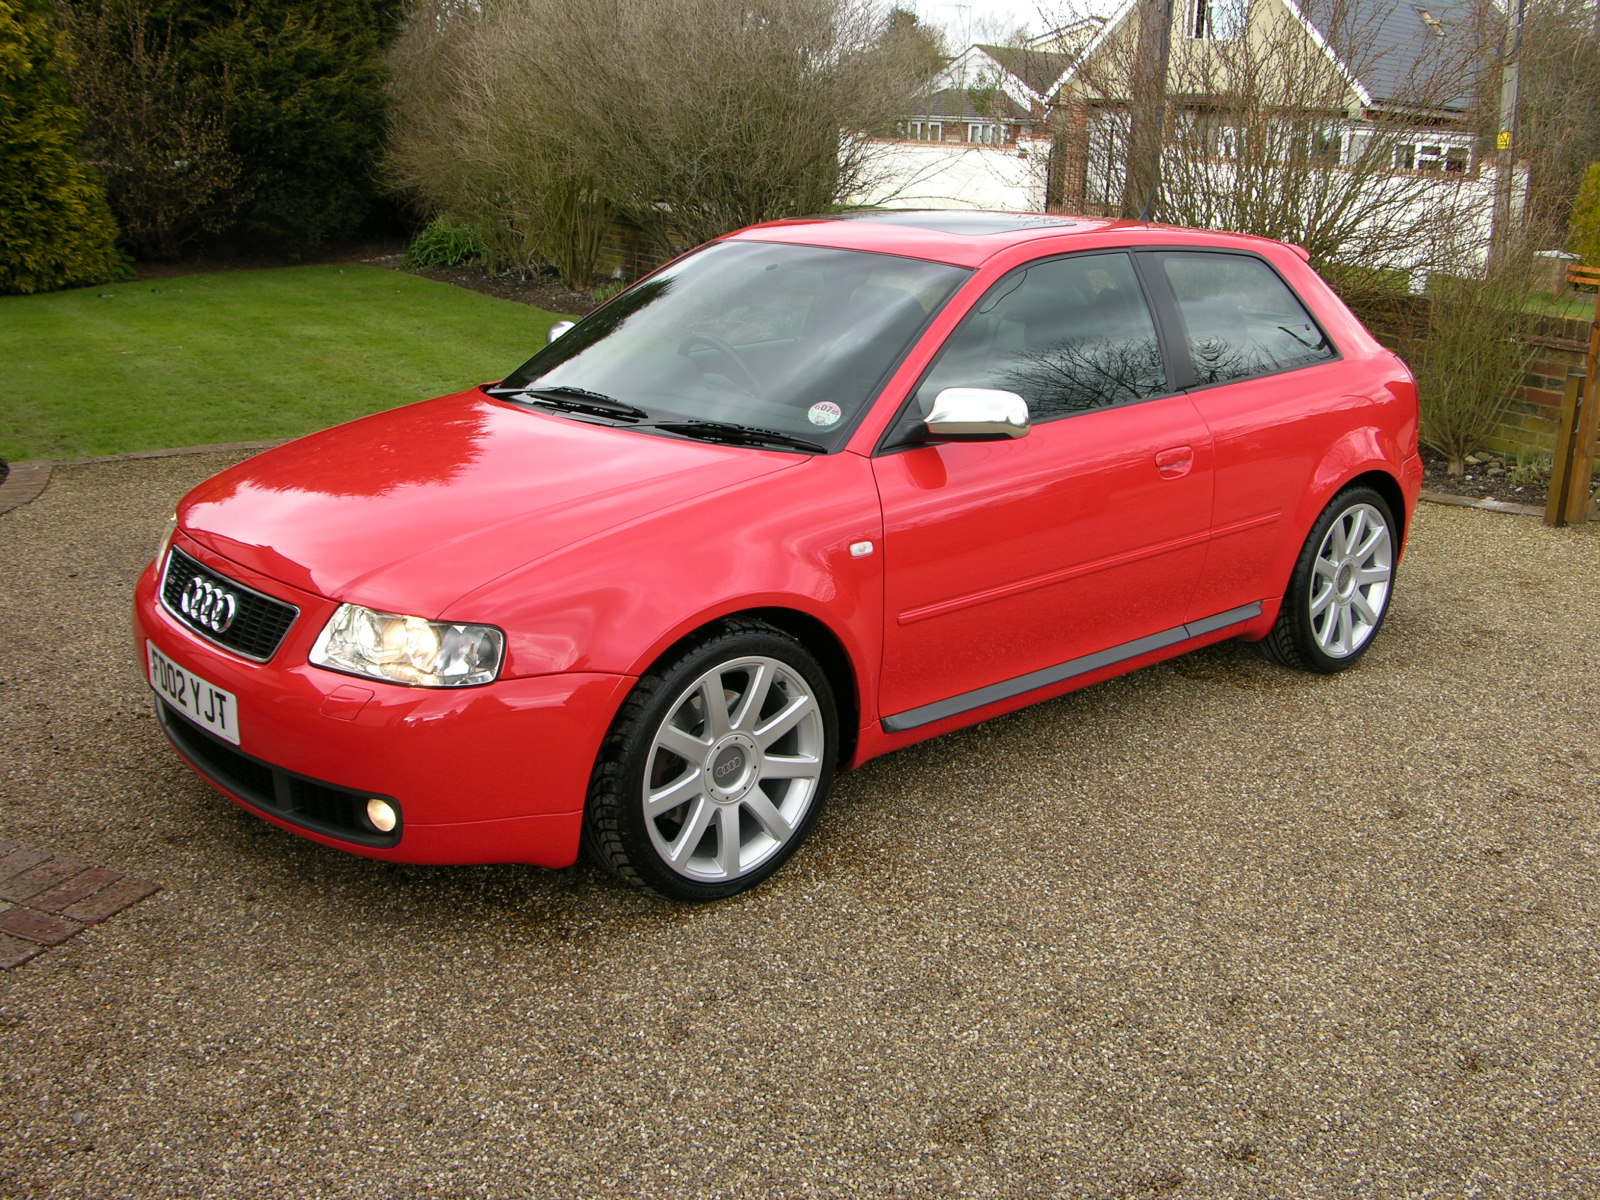 File Audi S3 2002 Absolute Red Flickr The Car Spy 11